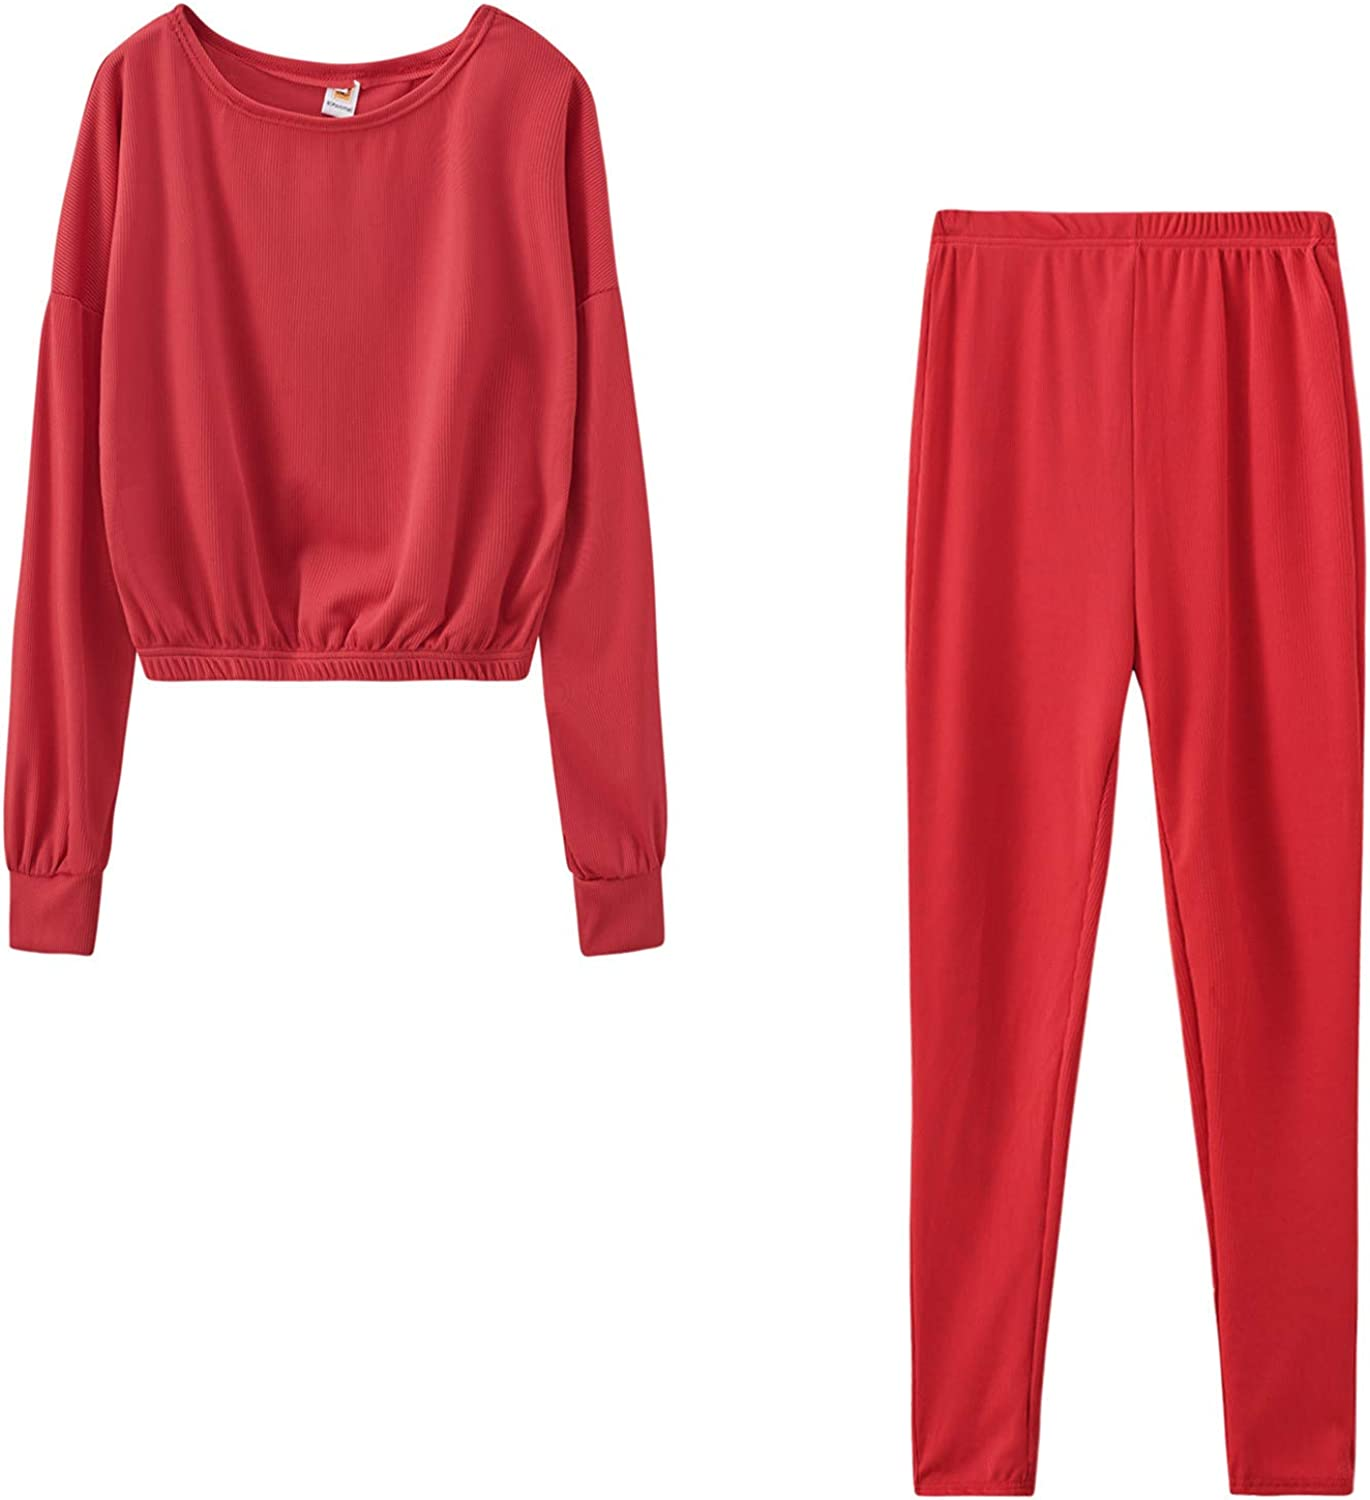 Women Fashion Solid Max 58% OFF Color Sweater Shirt Top S and Tracksuit Pant Max 44% OFF